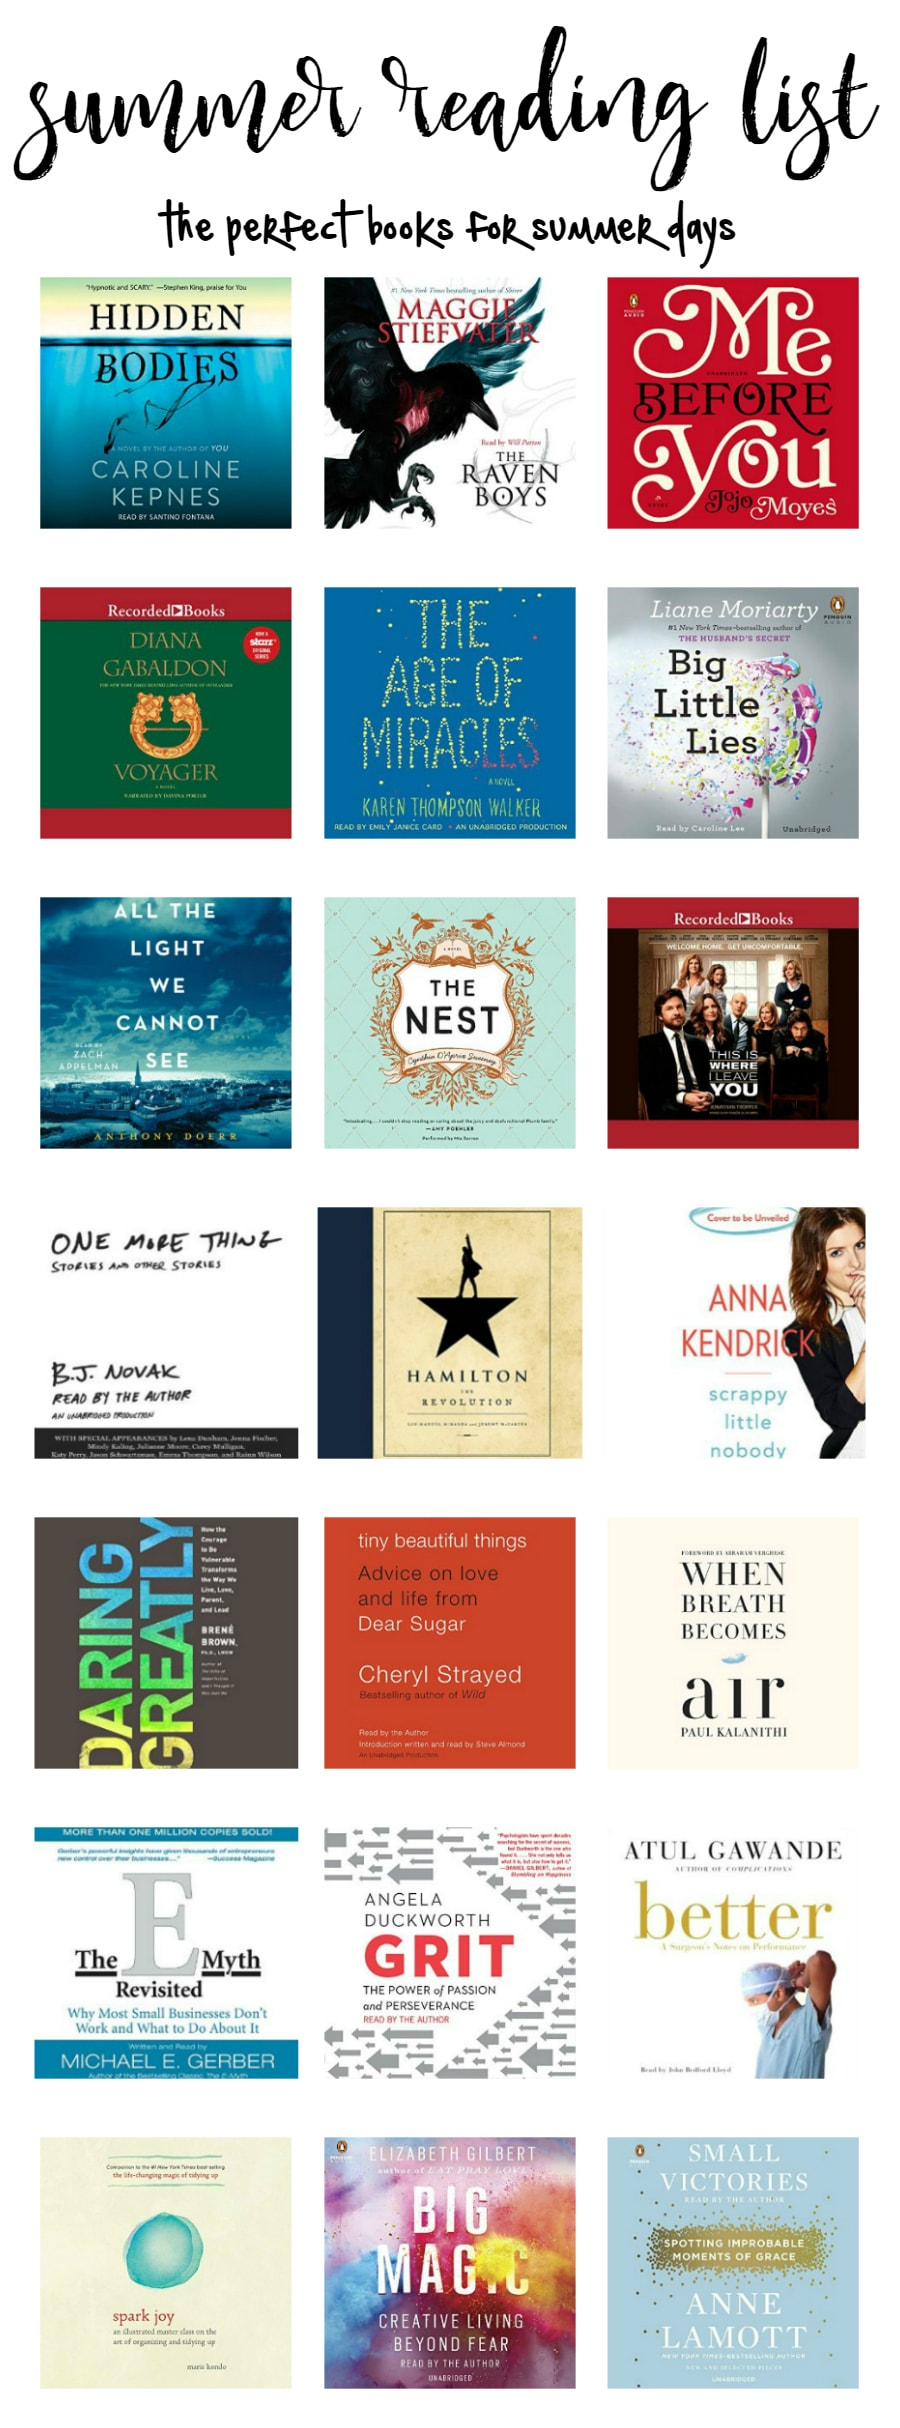 The perfect summer reading list